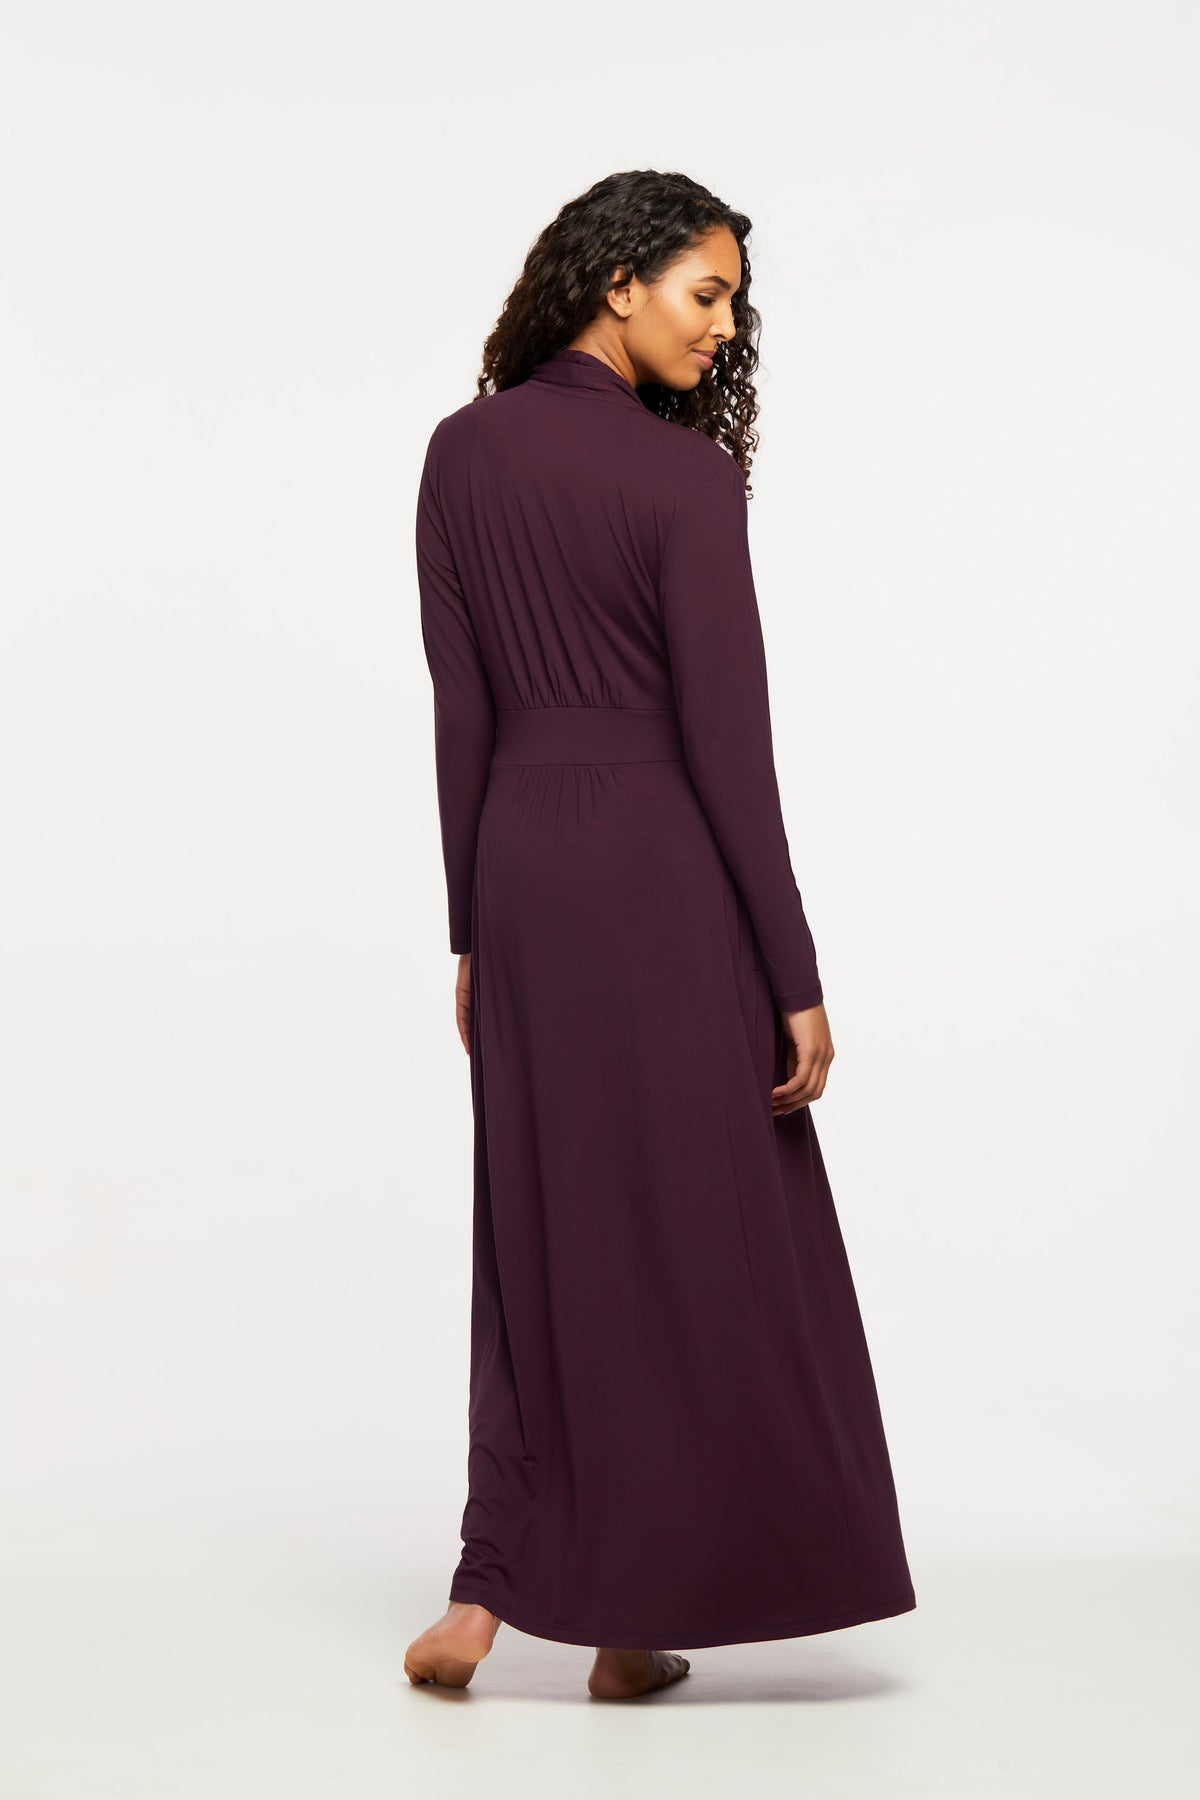 621 Long Robe |DARK PANSY|